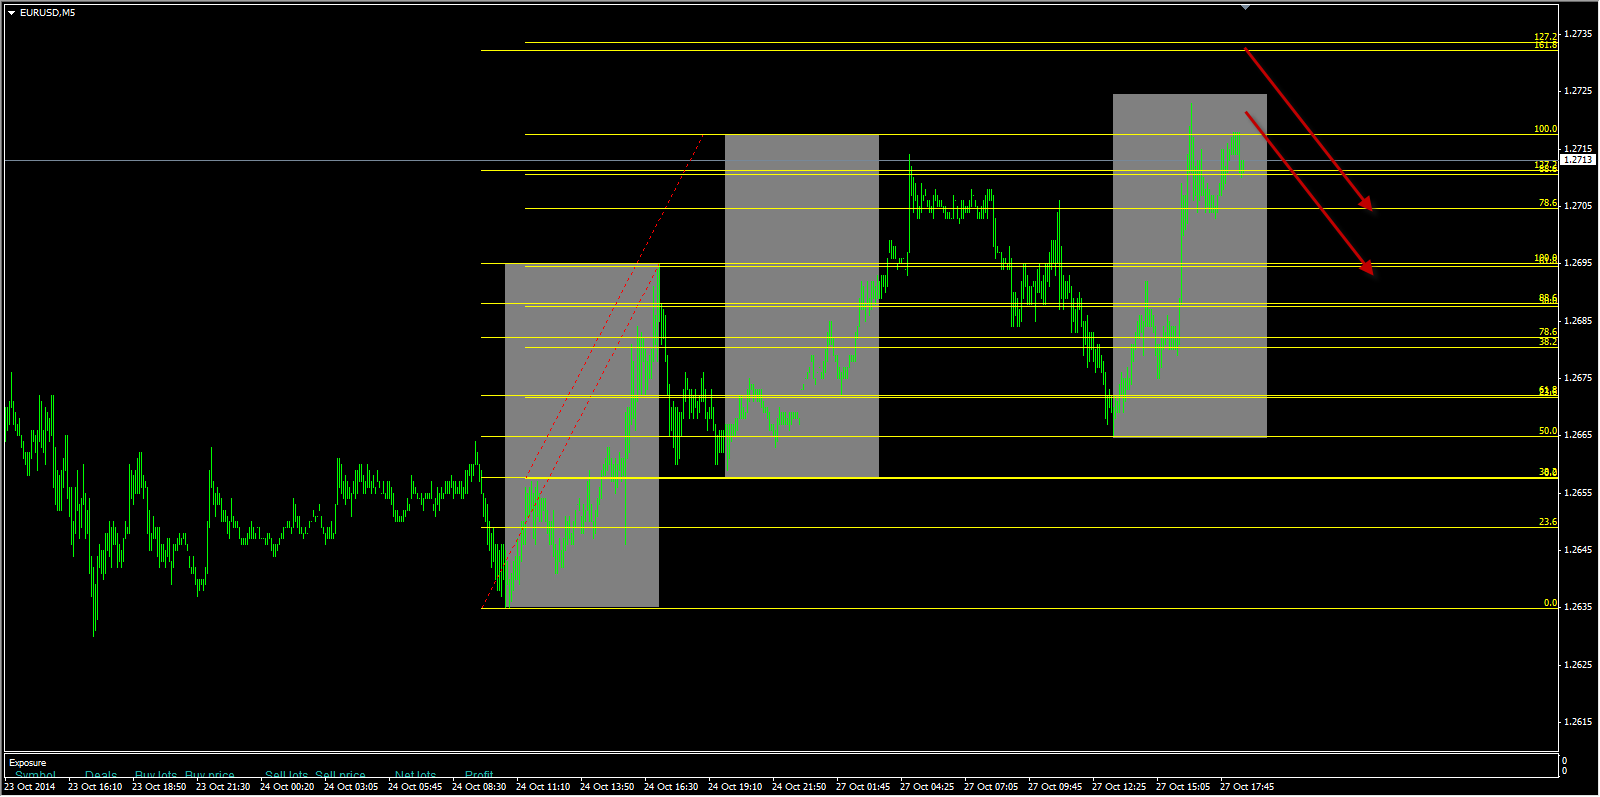 3 drive pattern emerges on EURUSD